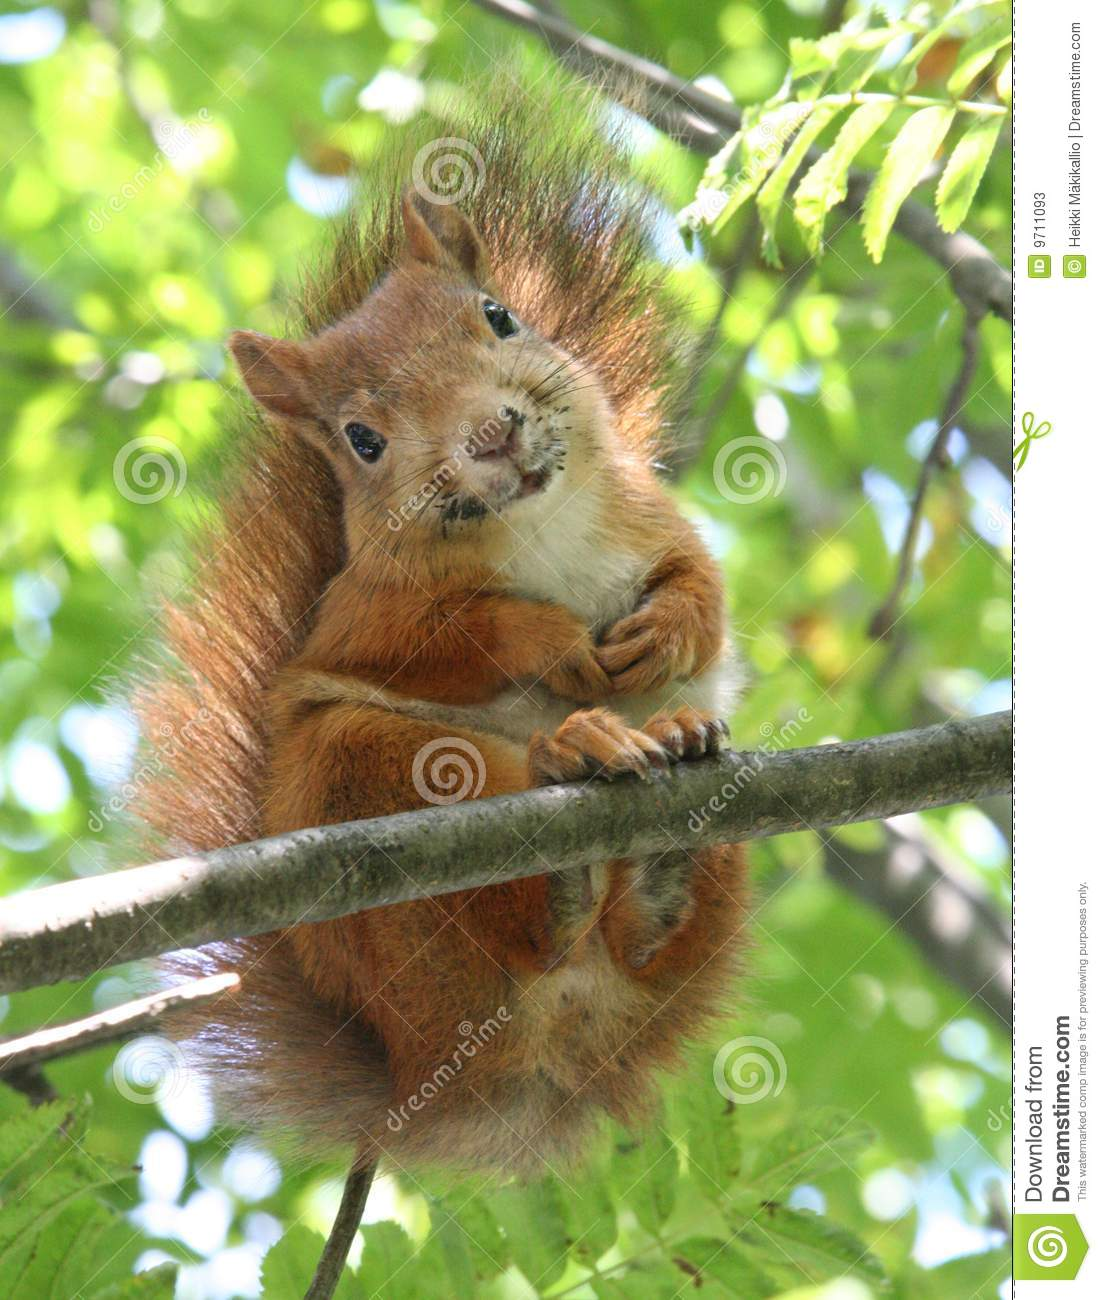 Cute Silly Wallpaper Smiling Squirrel Stock Image Image Of Cute Tail Smile